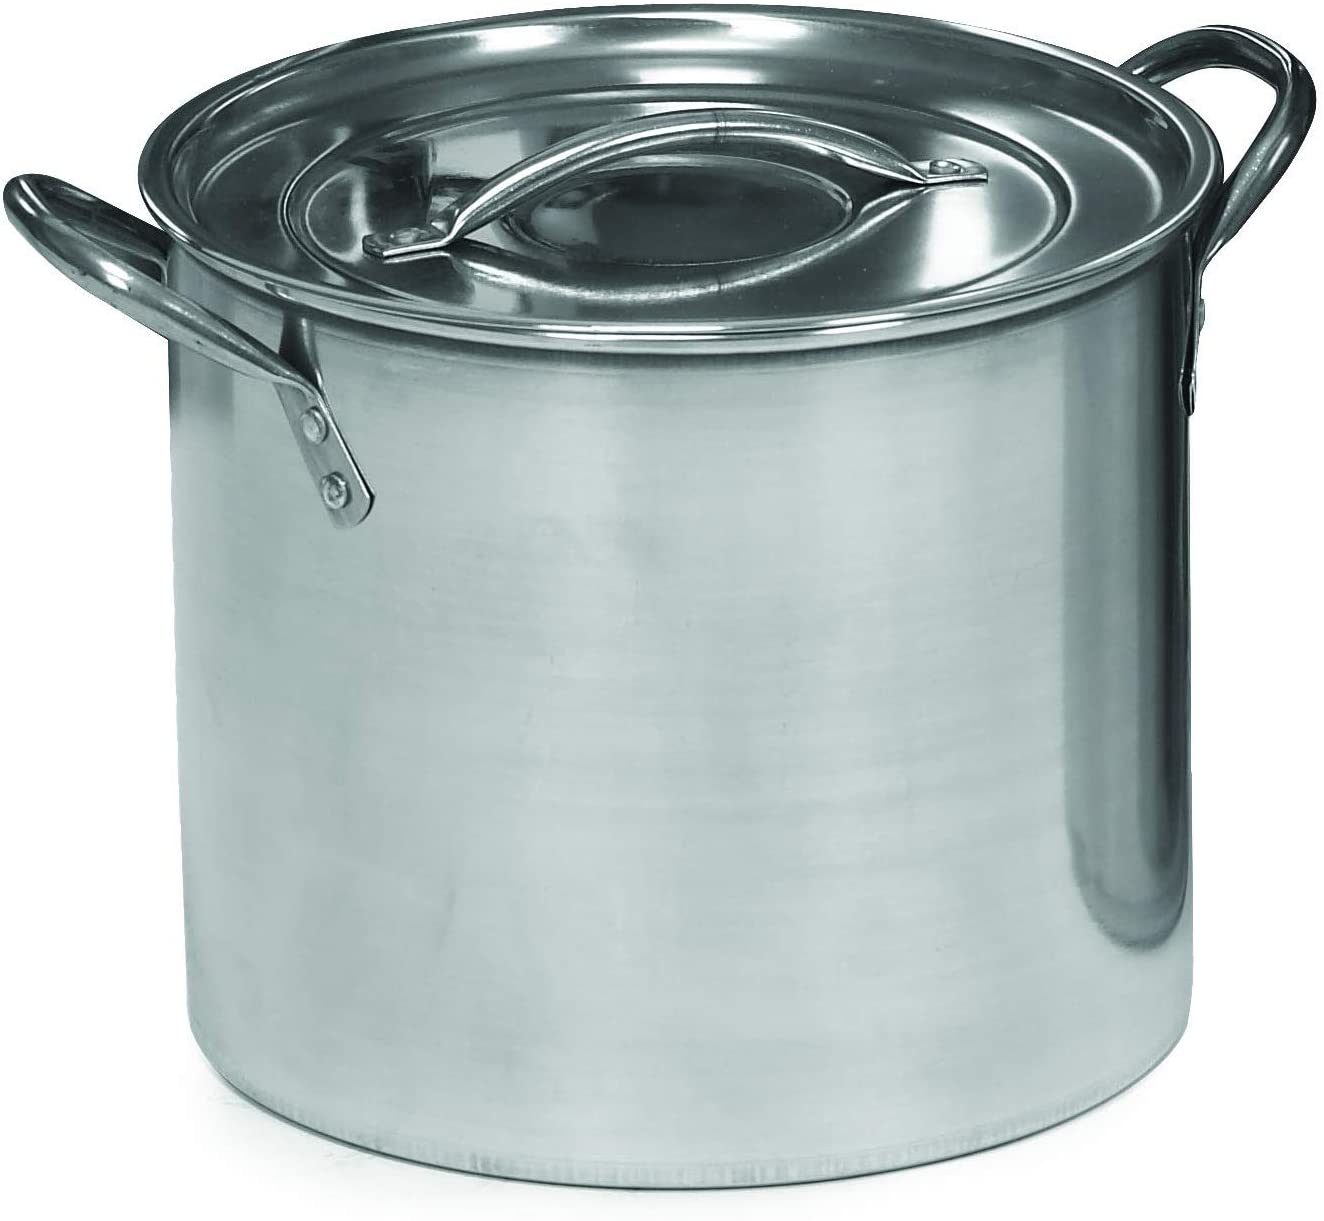 Stainless Steel Stock Pot with Lid 16-Quart